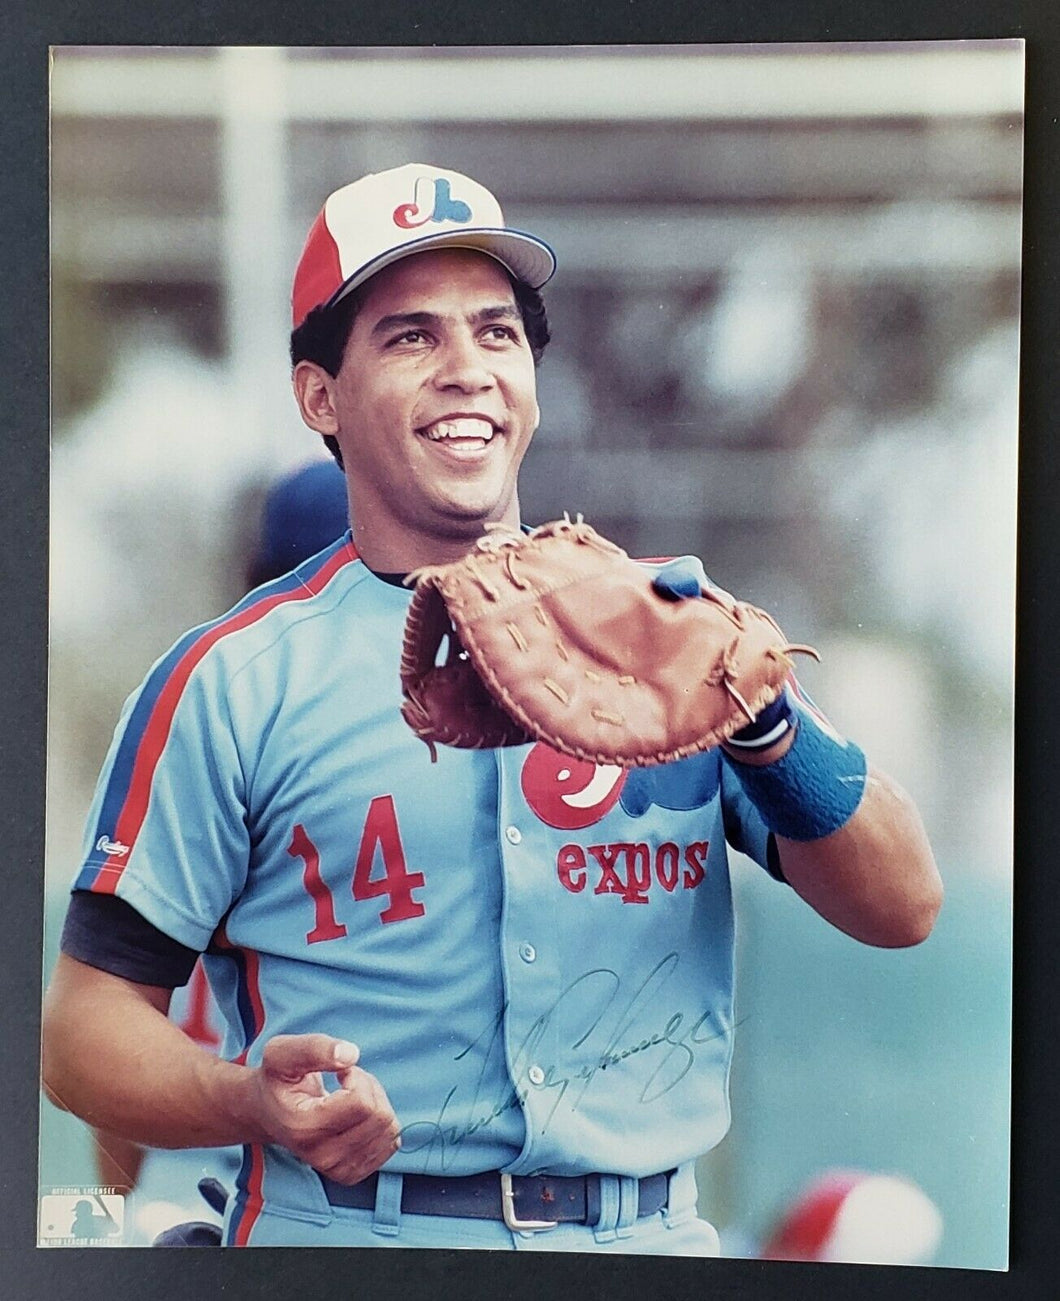 MLB Montreal Expos Andres Galarraga Signed Autographed Photo Vintage Baseball